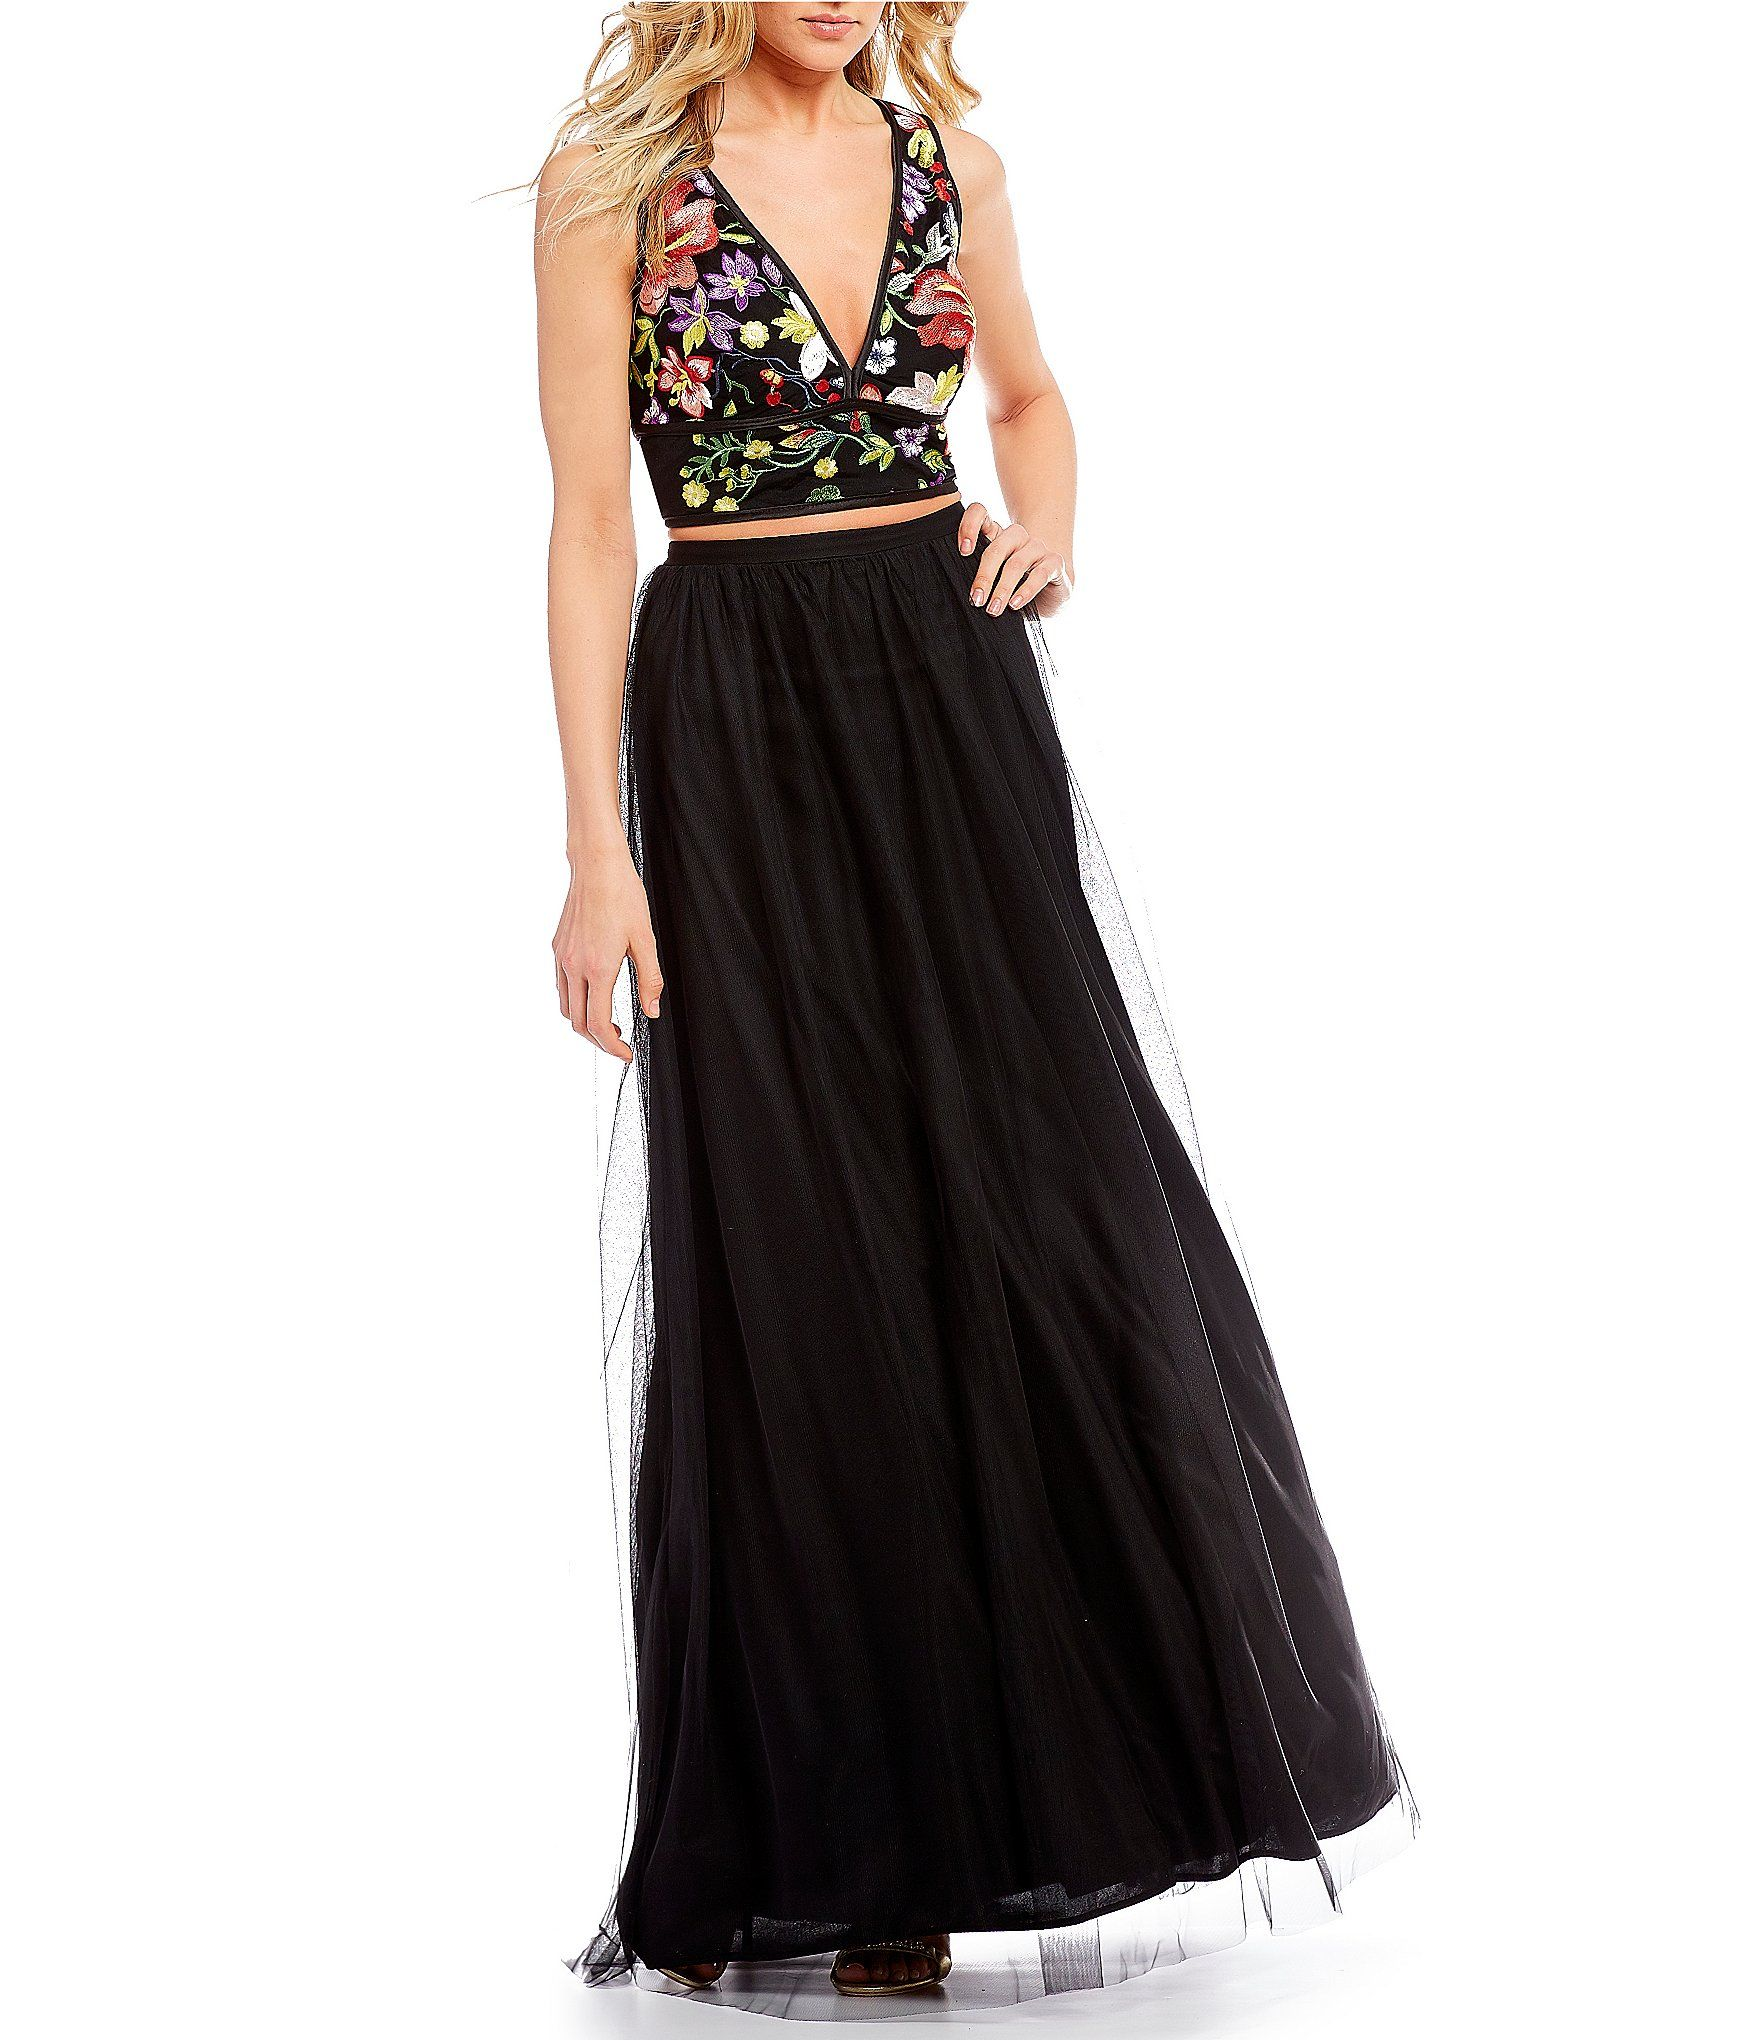 4655b0e6125 Shop for GB Social Embroidered Top Two-Piece Ball Gown at Dillards.com.  Visit Dillards.com to find clothing